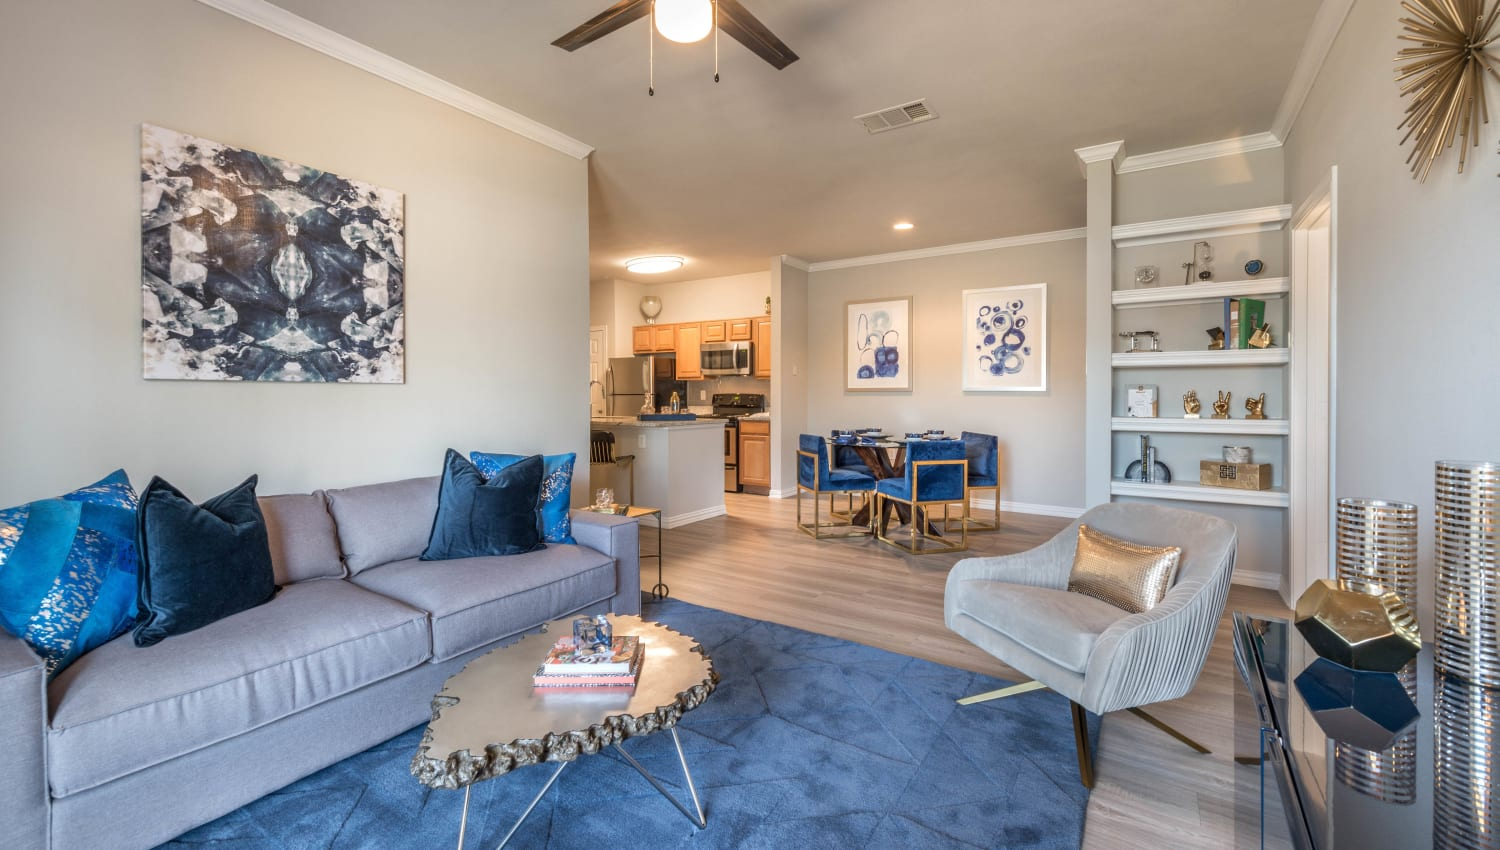 Large open-concept model home's living area with built-in shelving and hardwood floors at Olympus Stone Glen in Keller, Texas